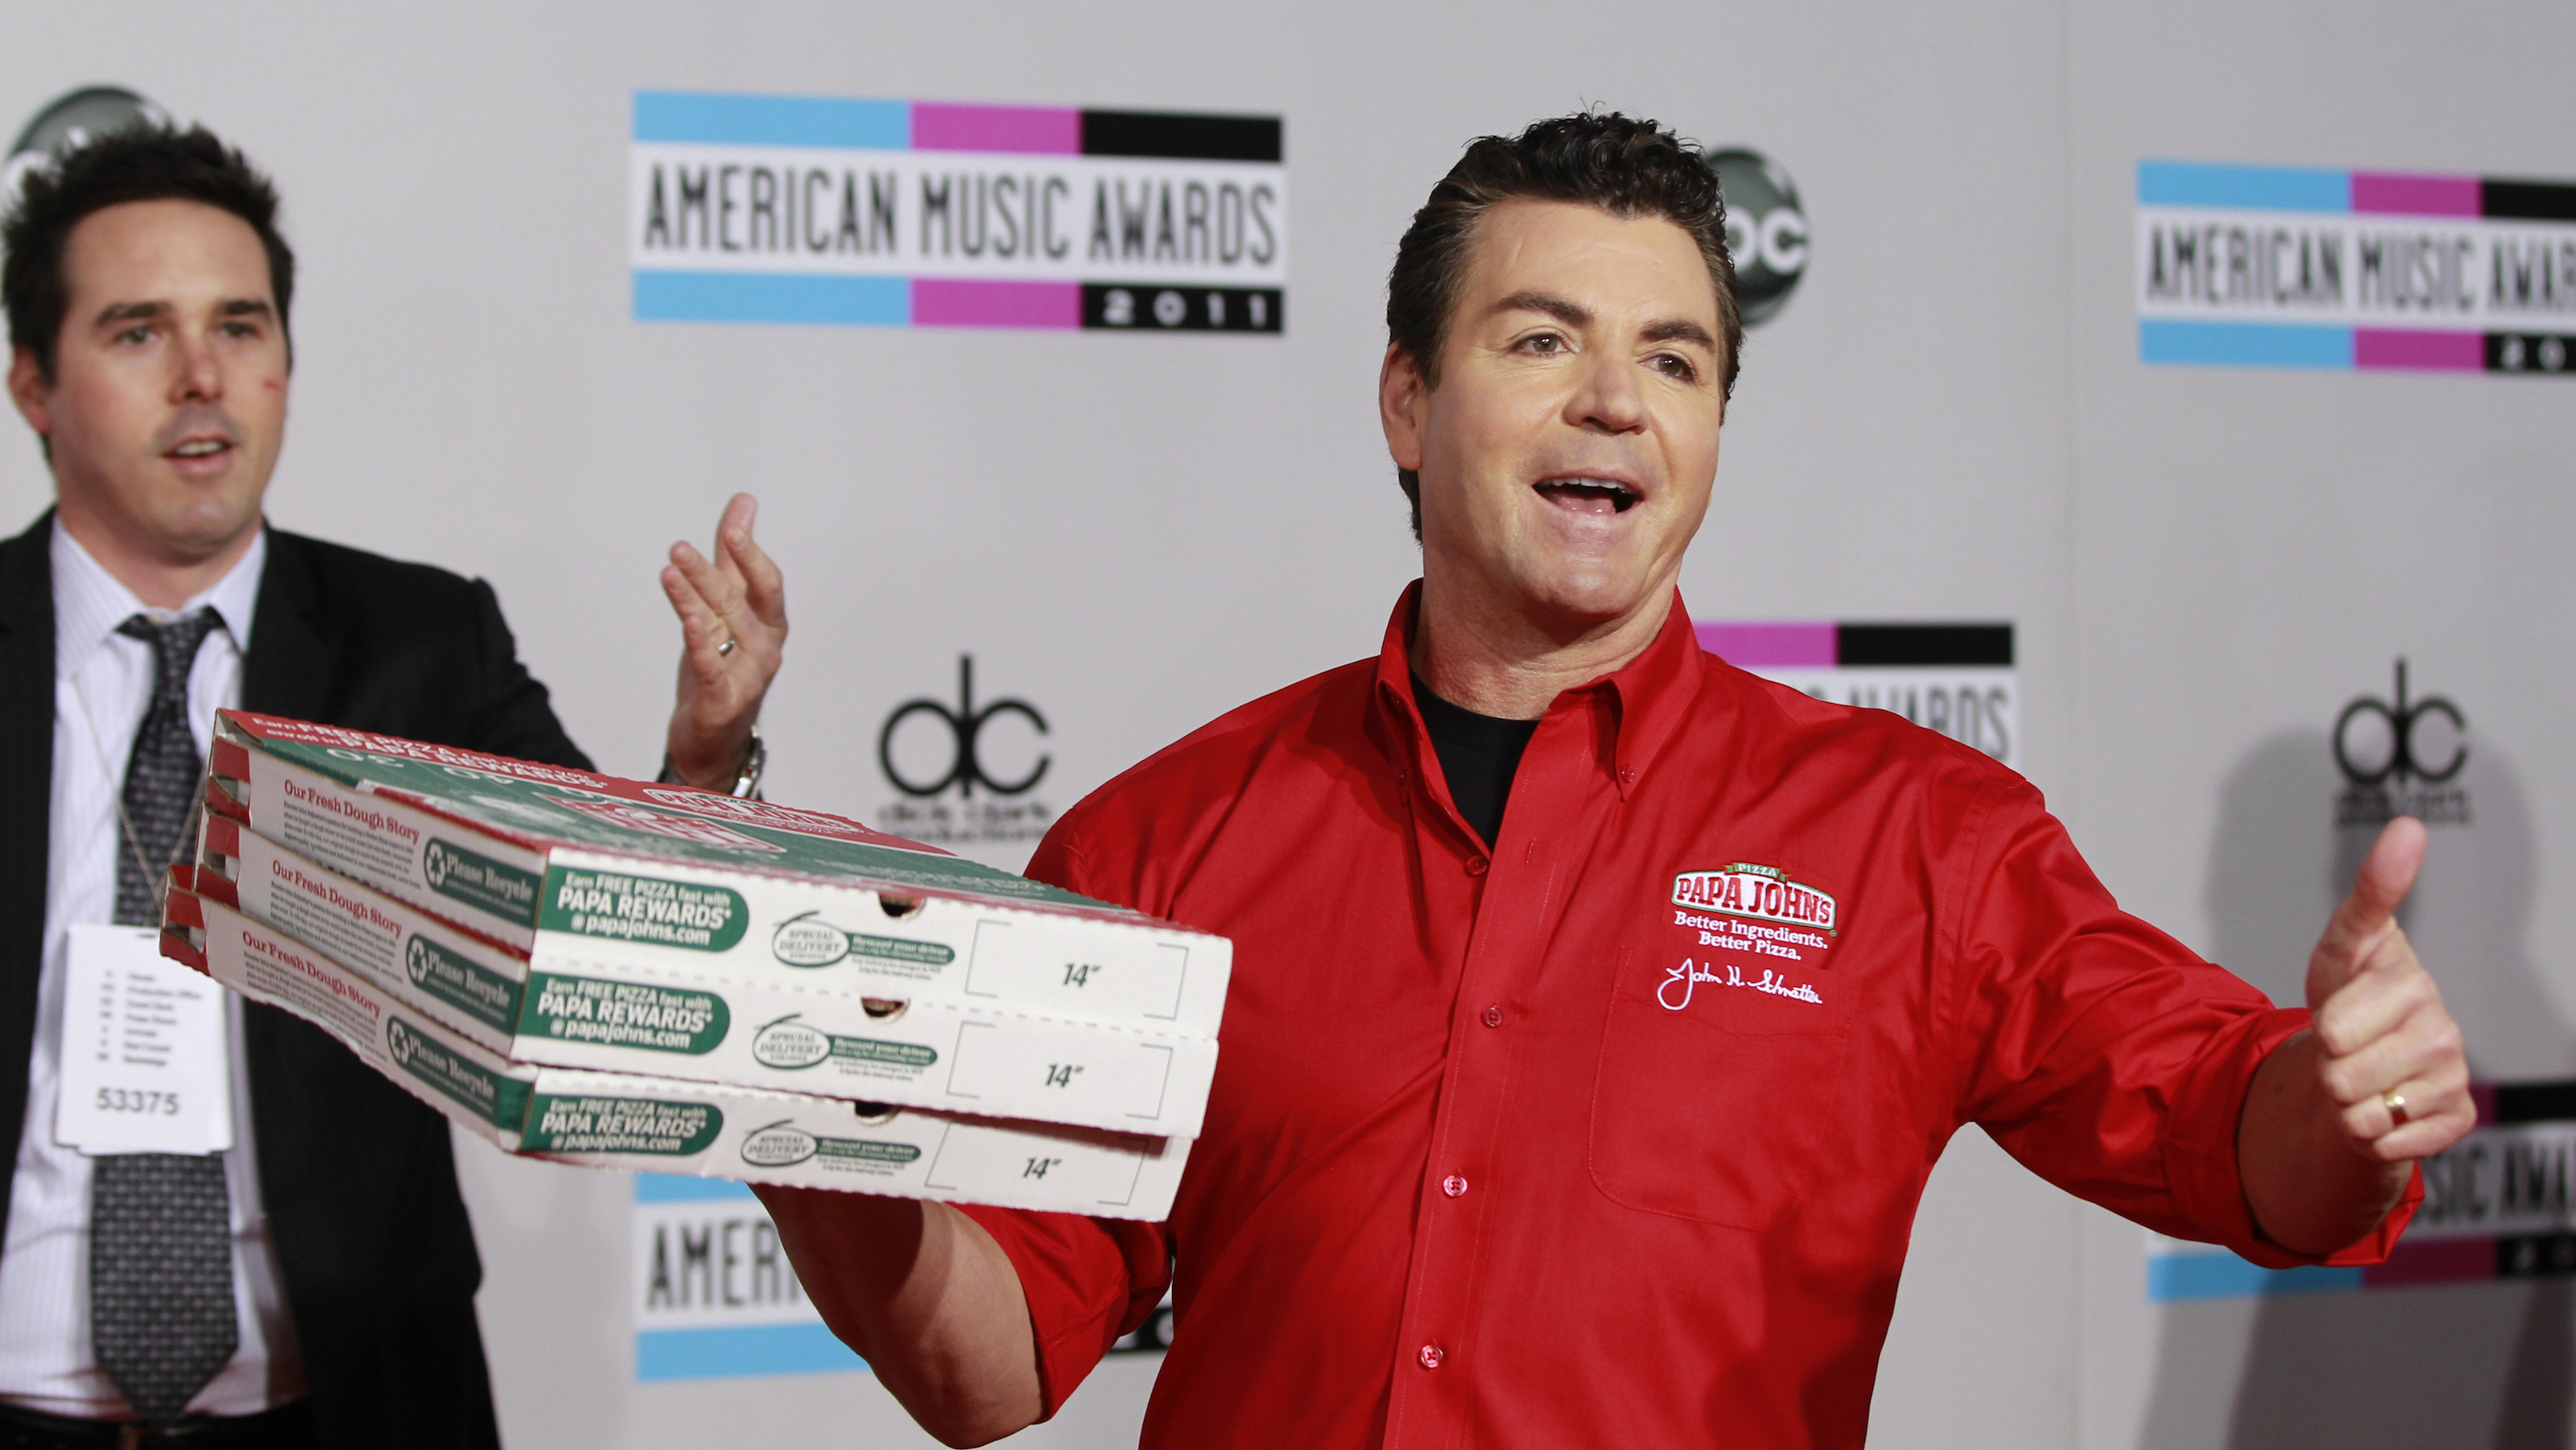 Papa Johns Is Being Hurt By A Leadership Failure But Its Not From The Nfl Pzza Quartz At Work